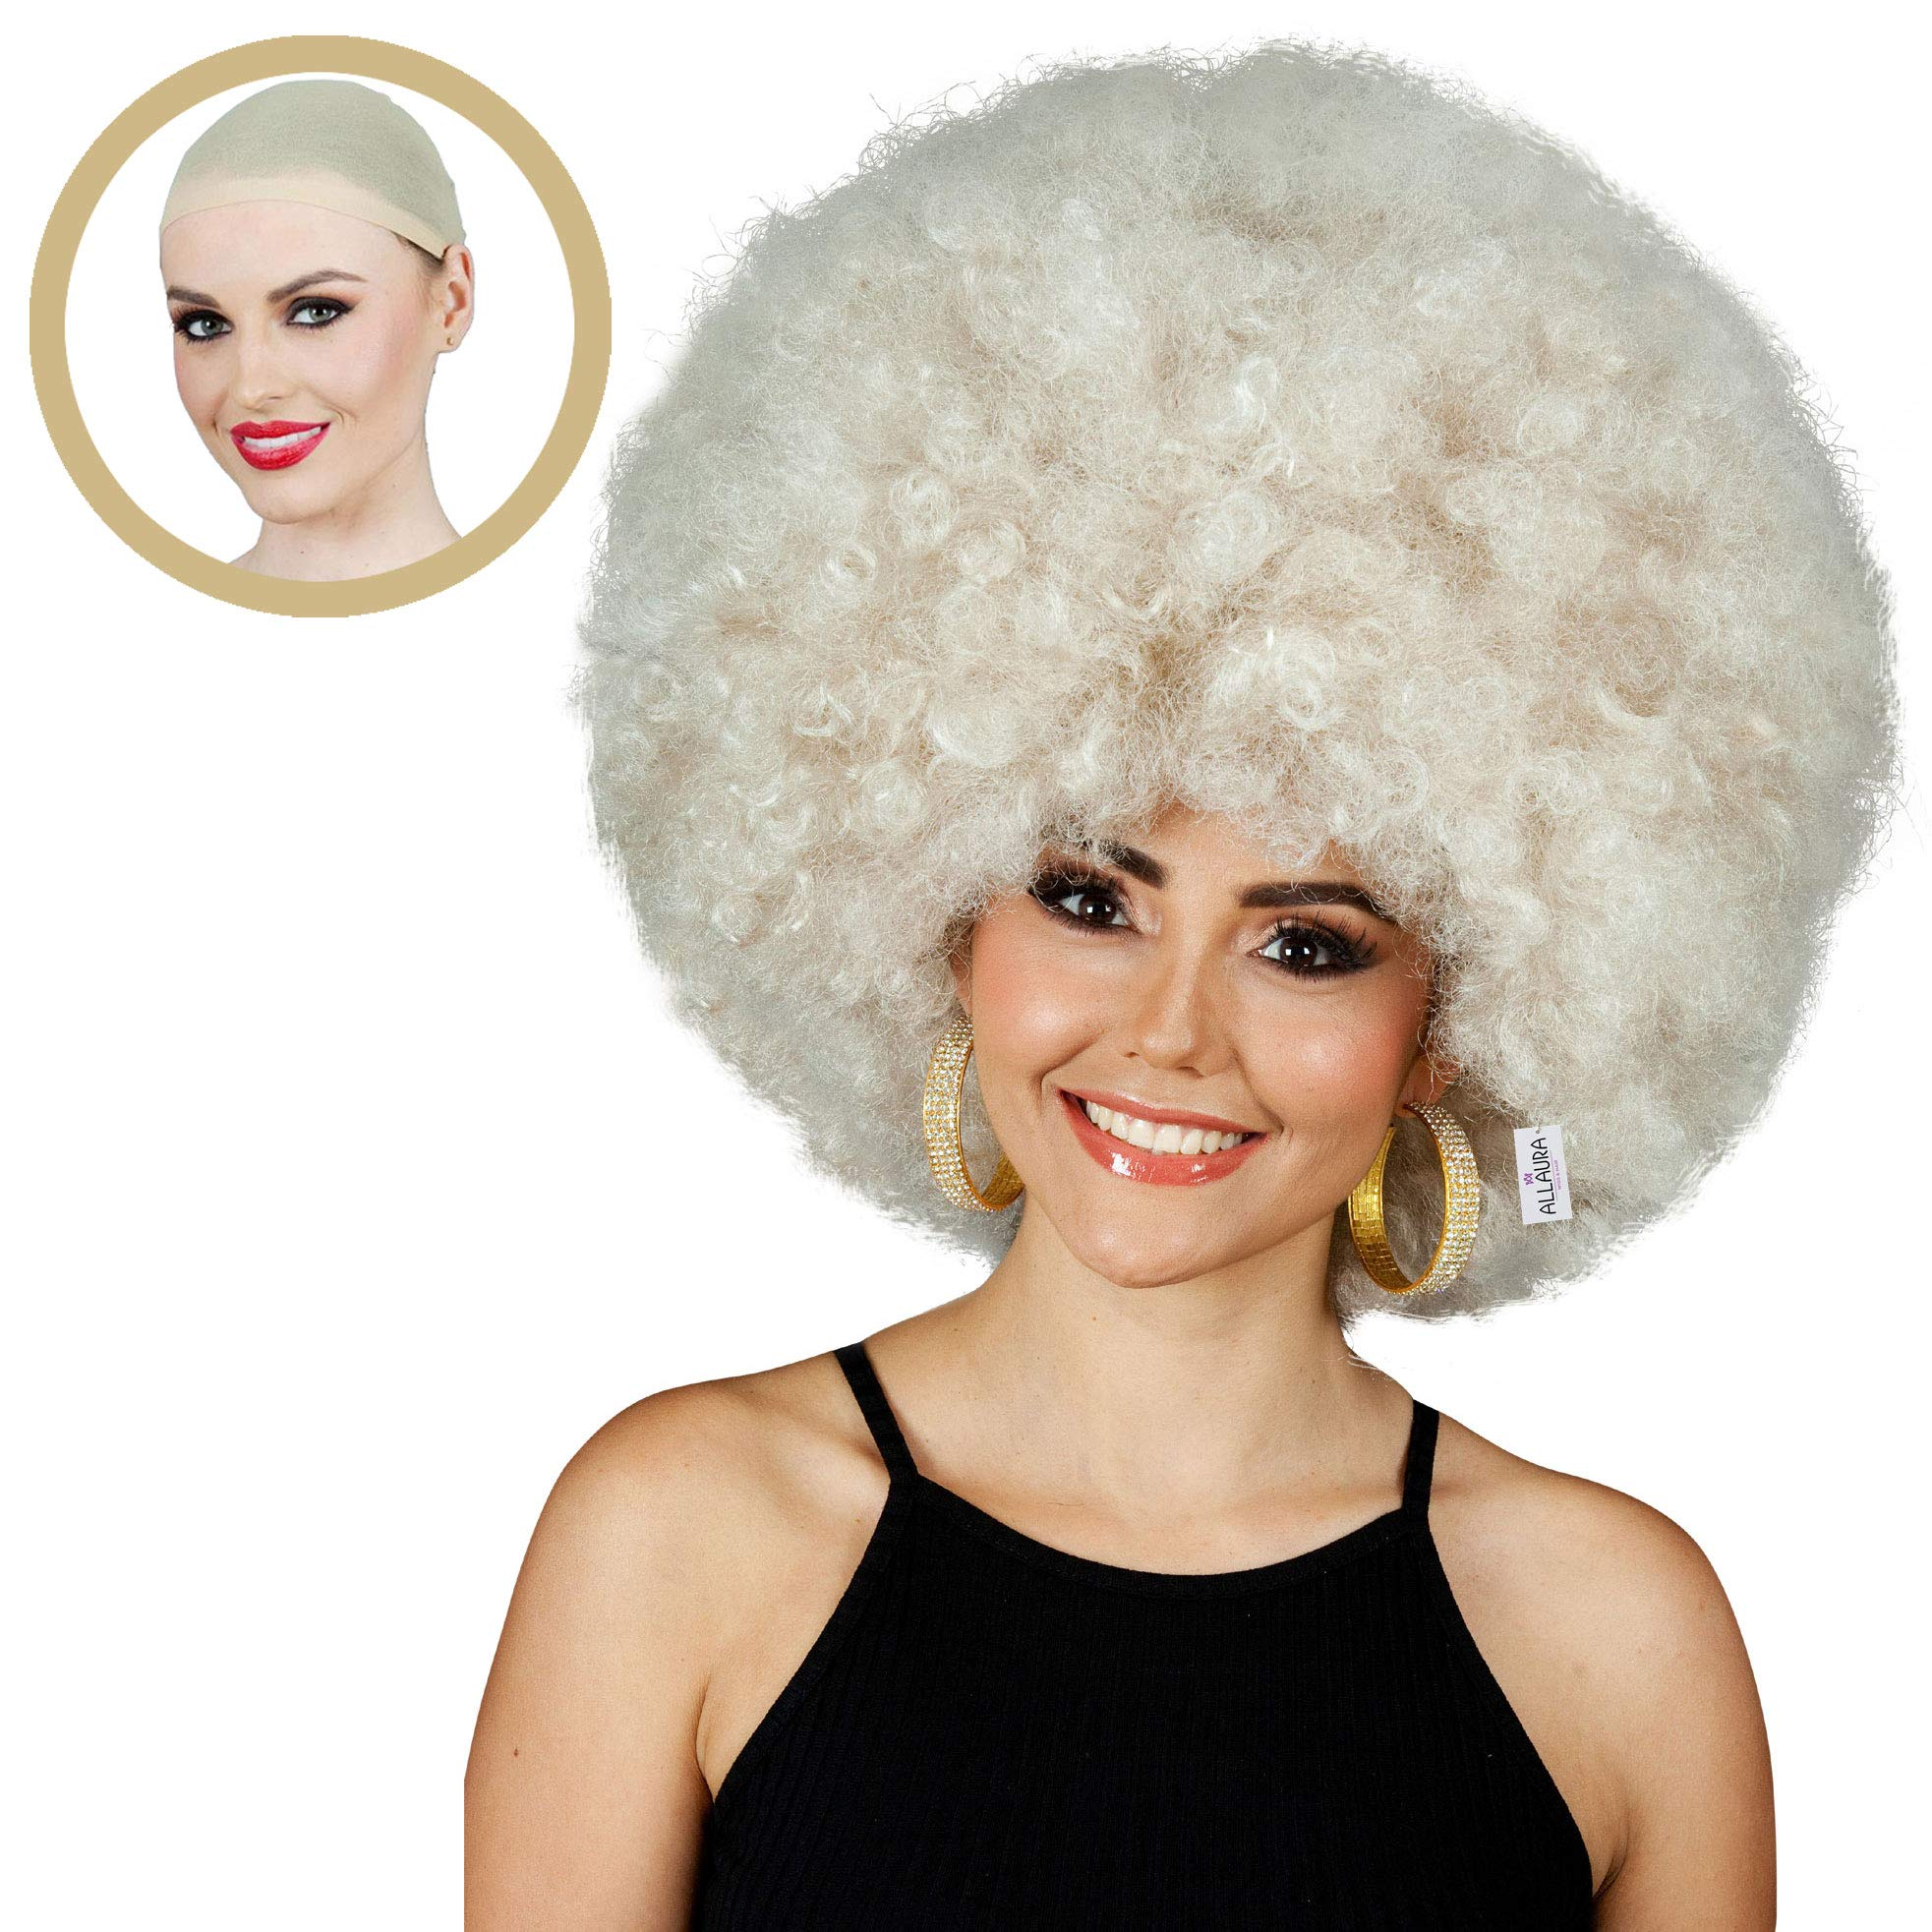 ALLAURA 60s and 70s Jumbo Afro Wig for Women! Big Blonde Short Curly Disco Costume Wigs